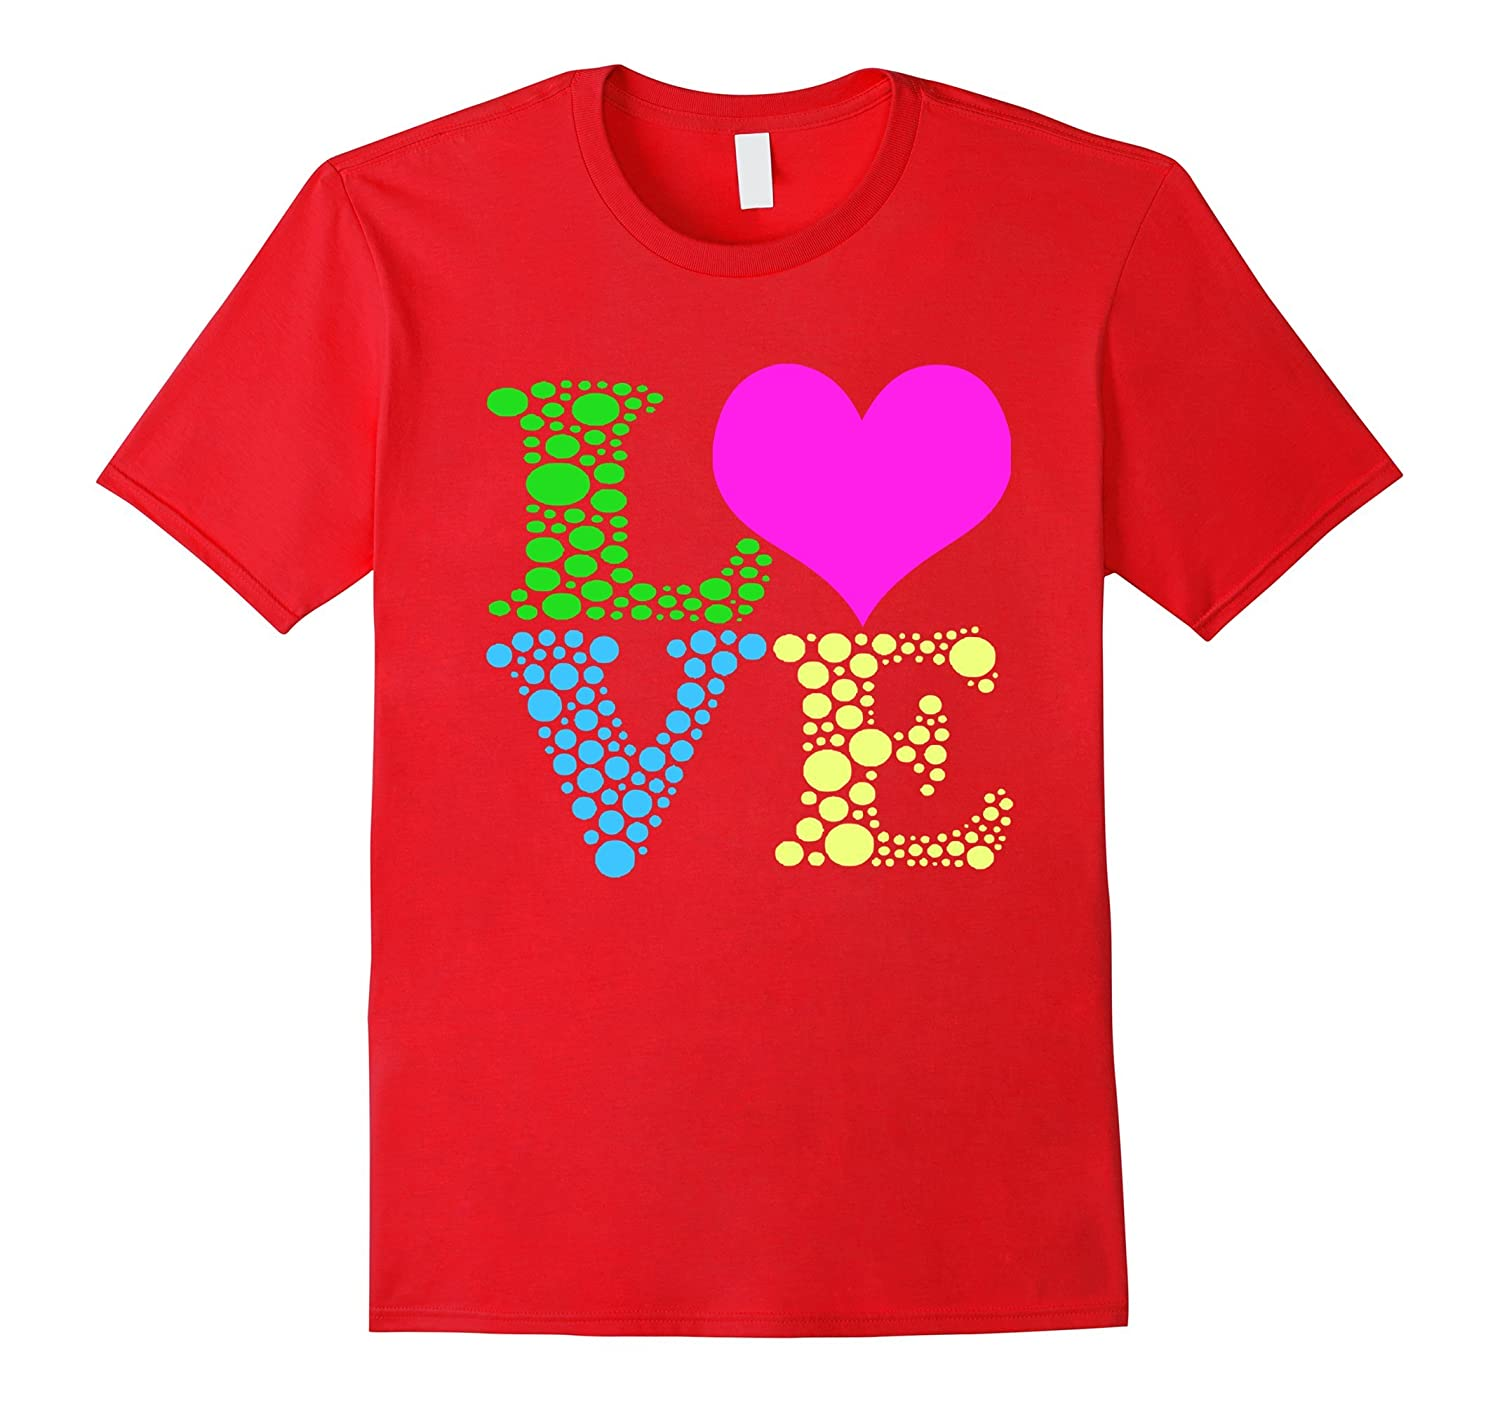 Cover your body with amazing Girls Valentine t-shirts from Zazzle. Search for your new favorite shirt from thousands of great designs!